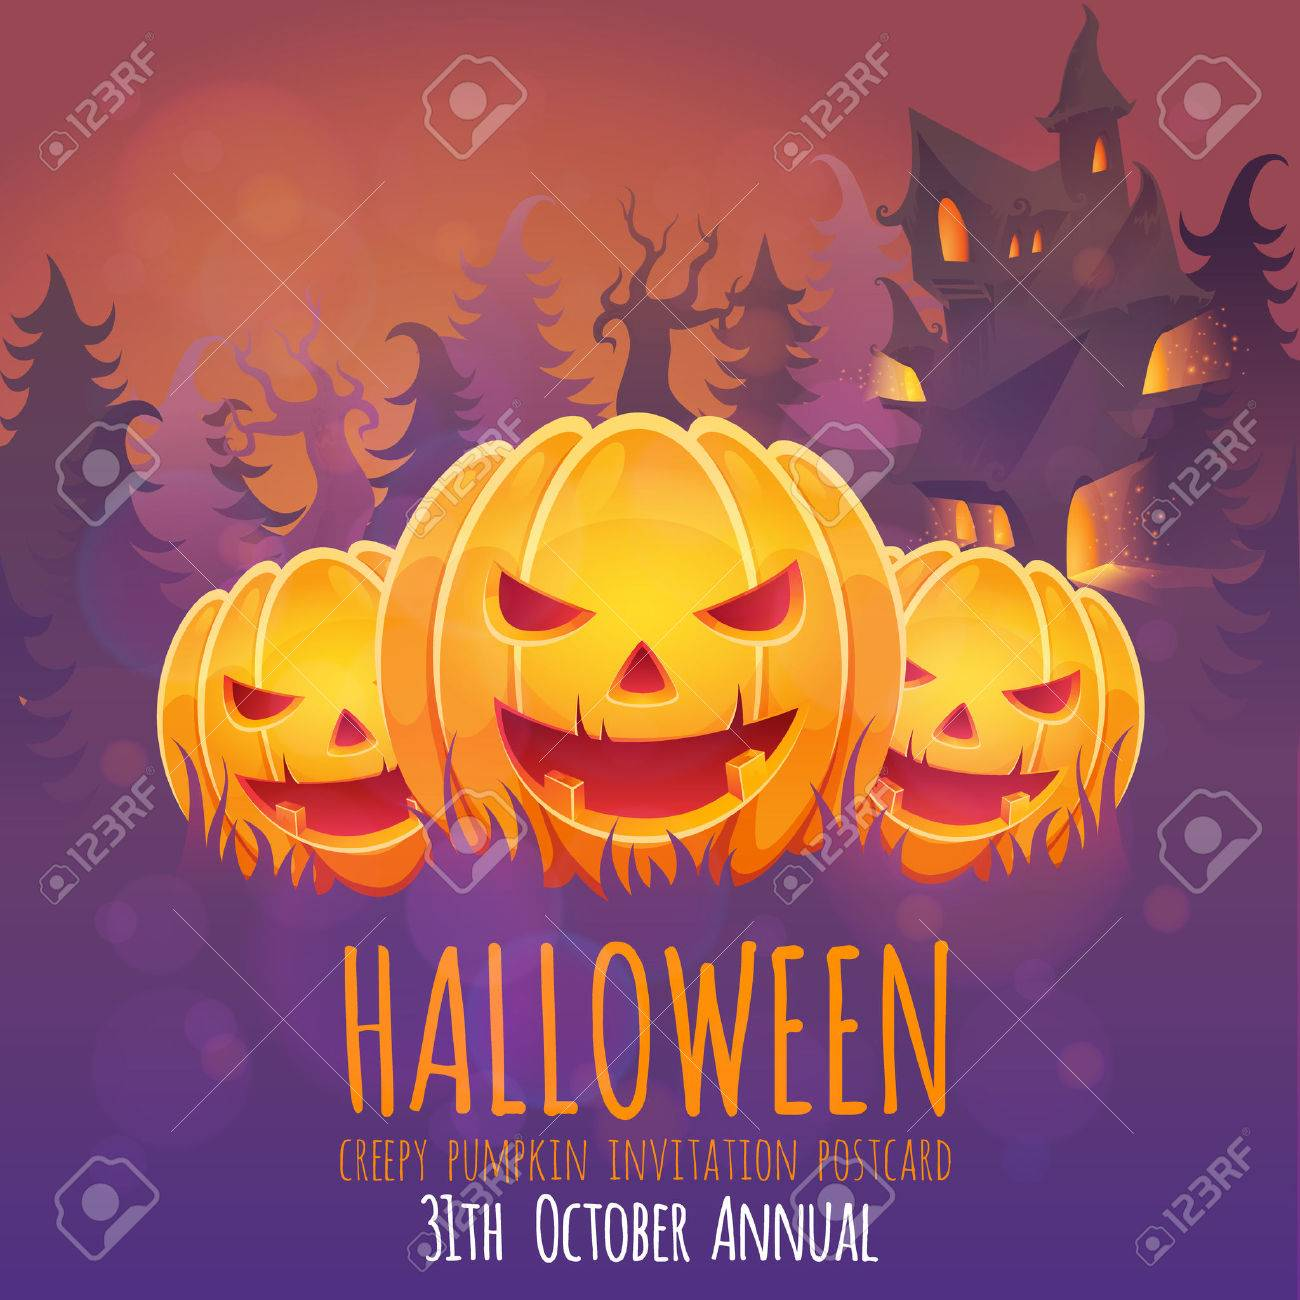 creepy dark halloween invitation card with scary pumpkin smiling